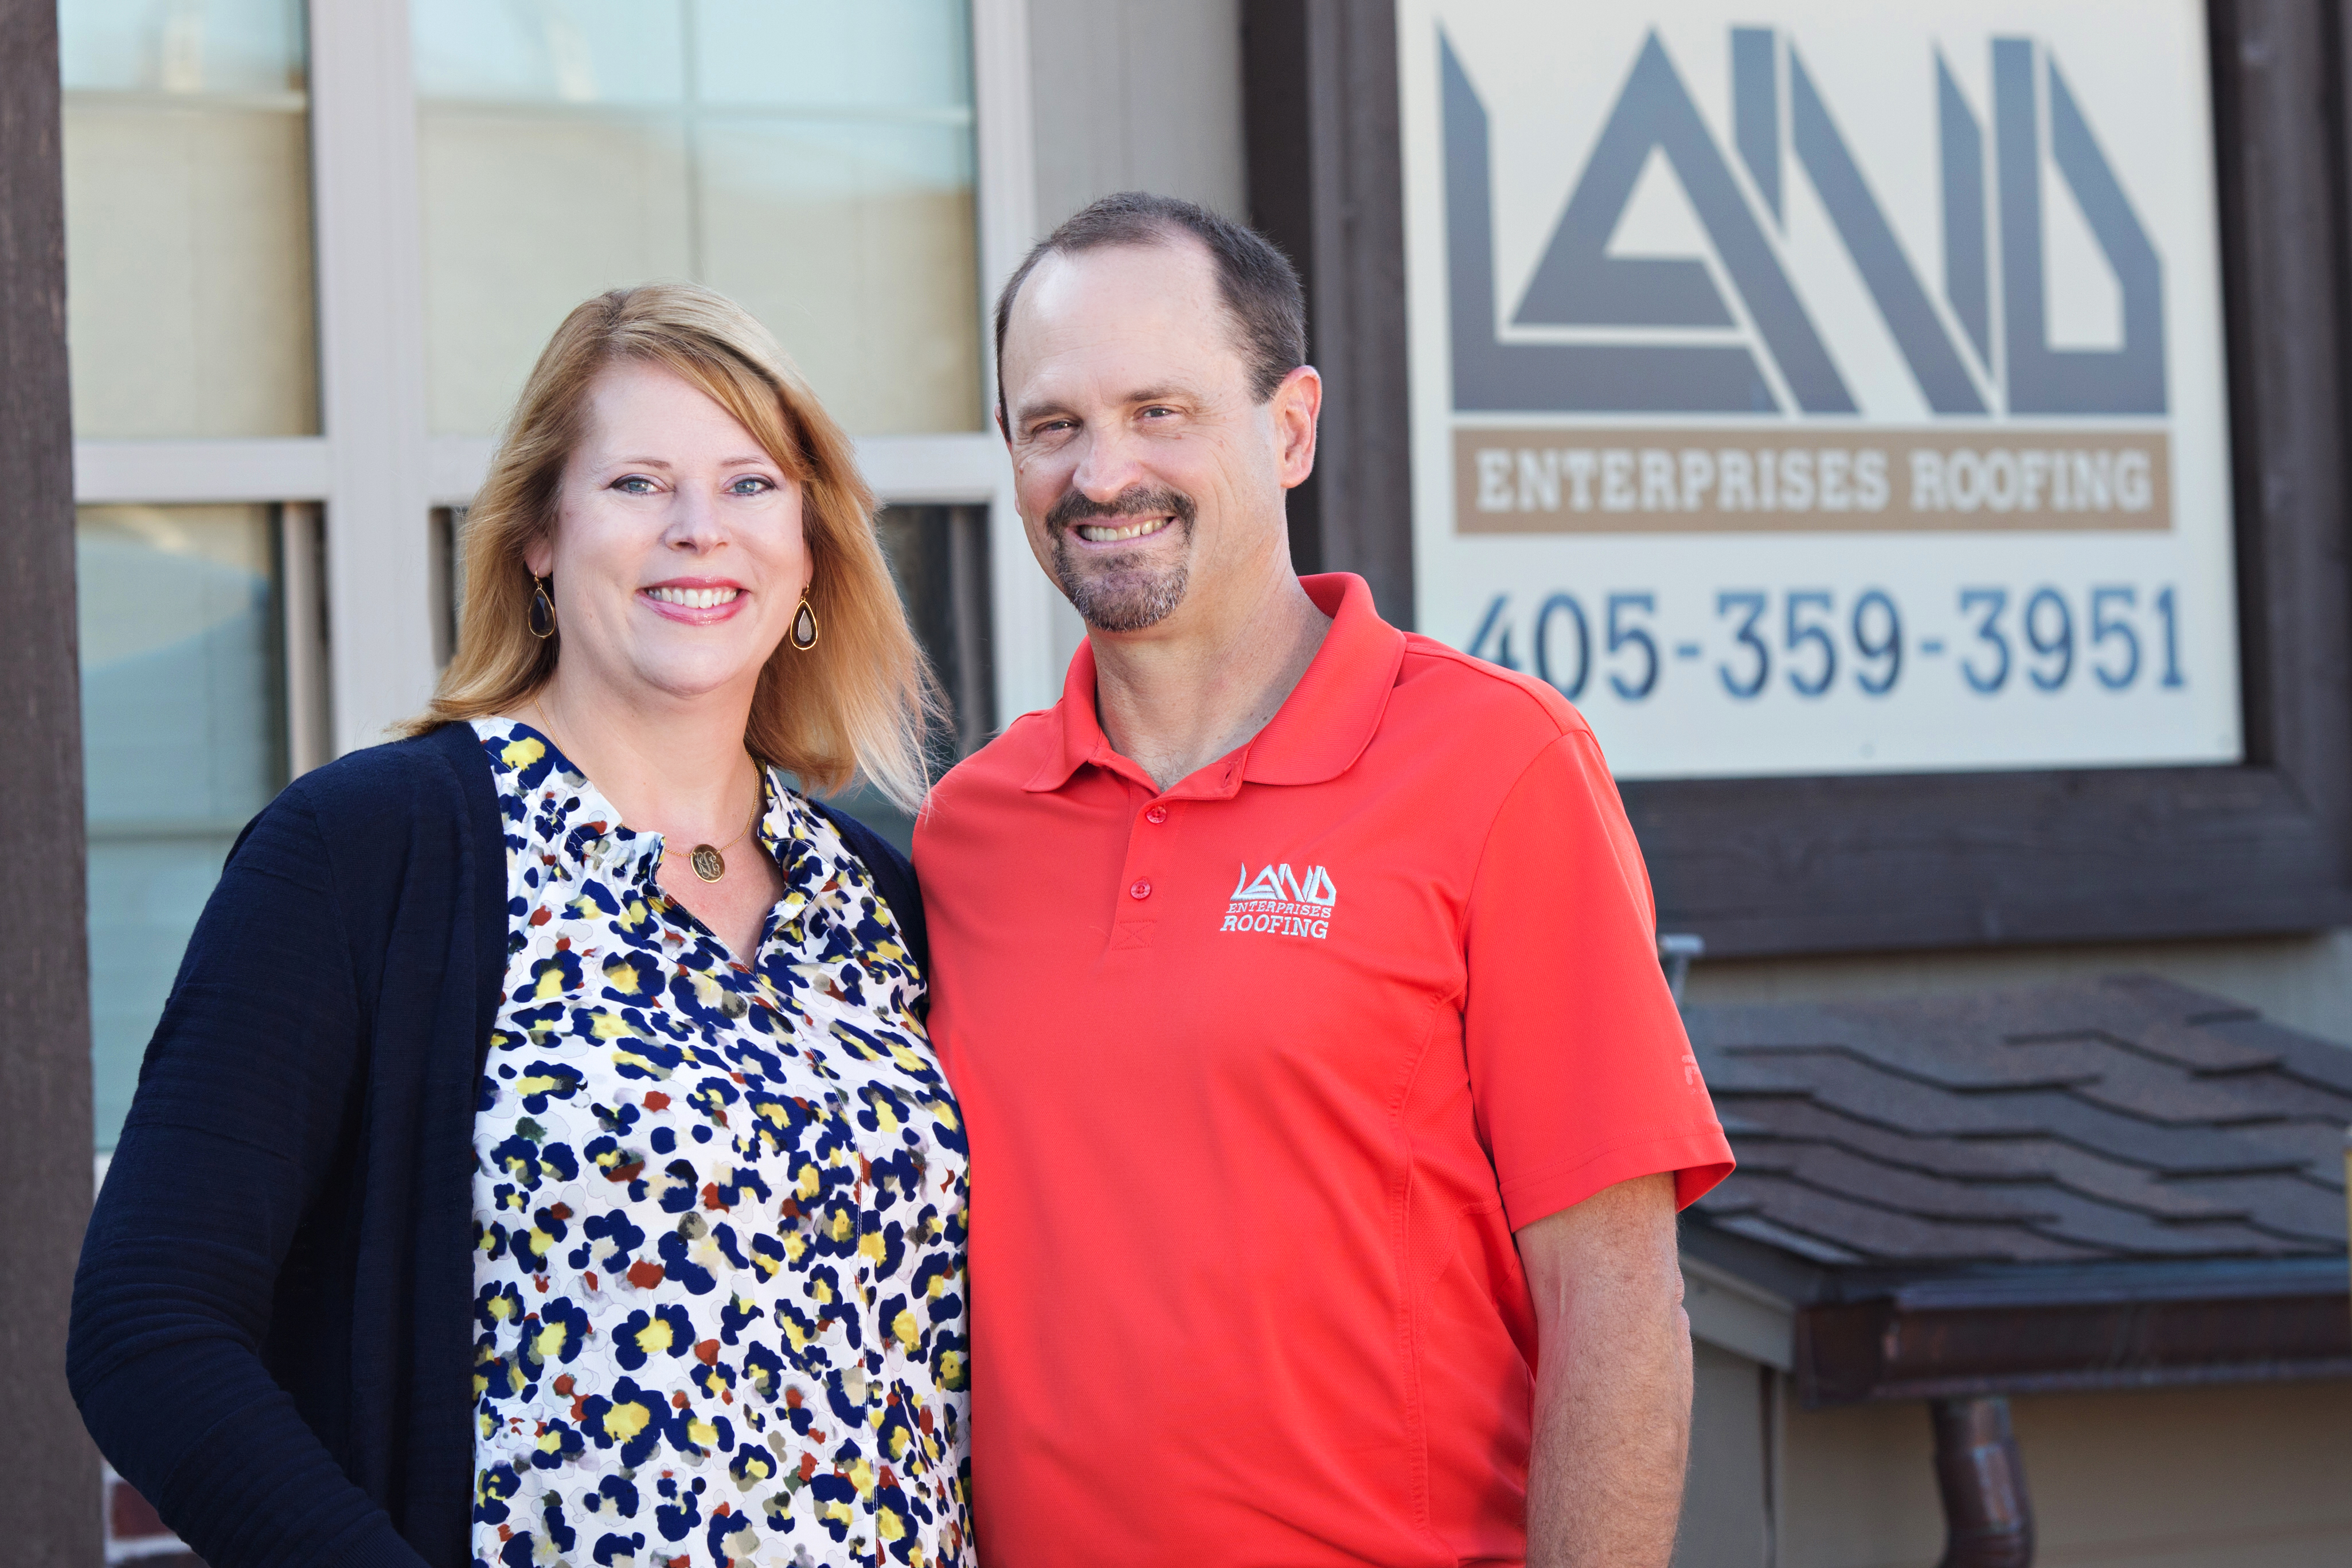 Brian and Kirsten Land, Land Enterprises Roofing